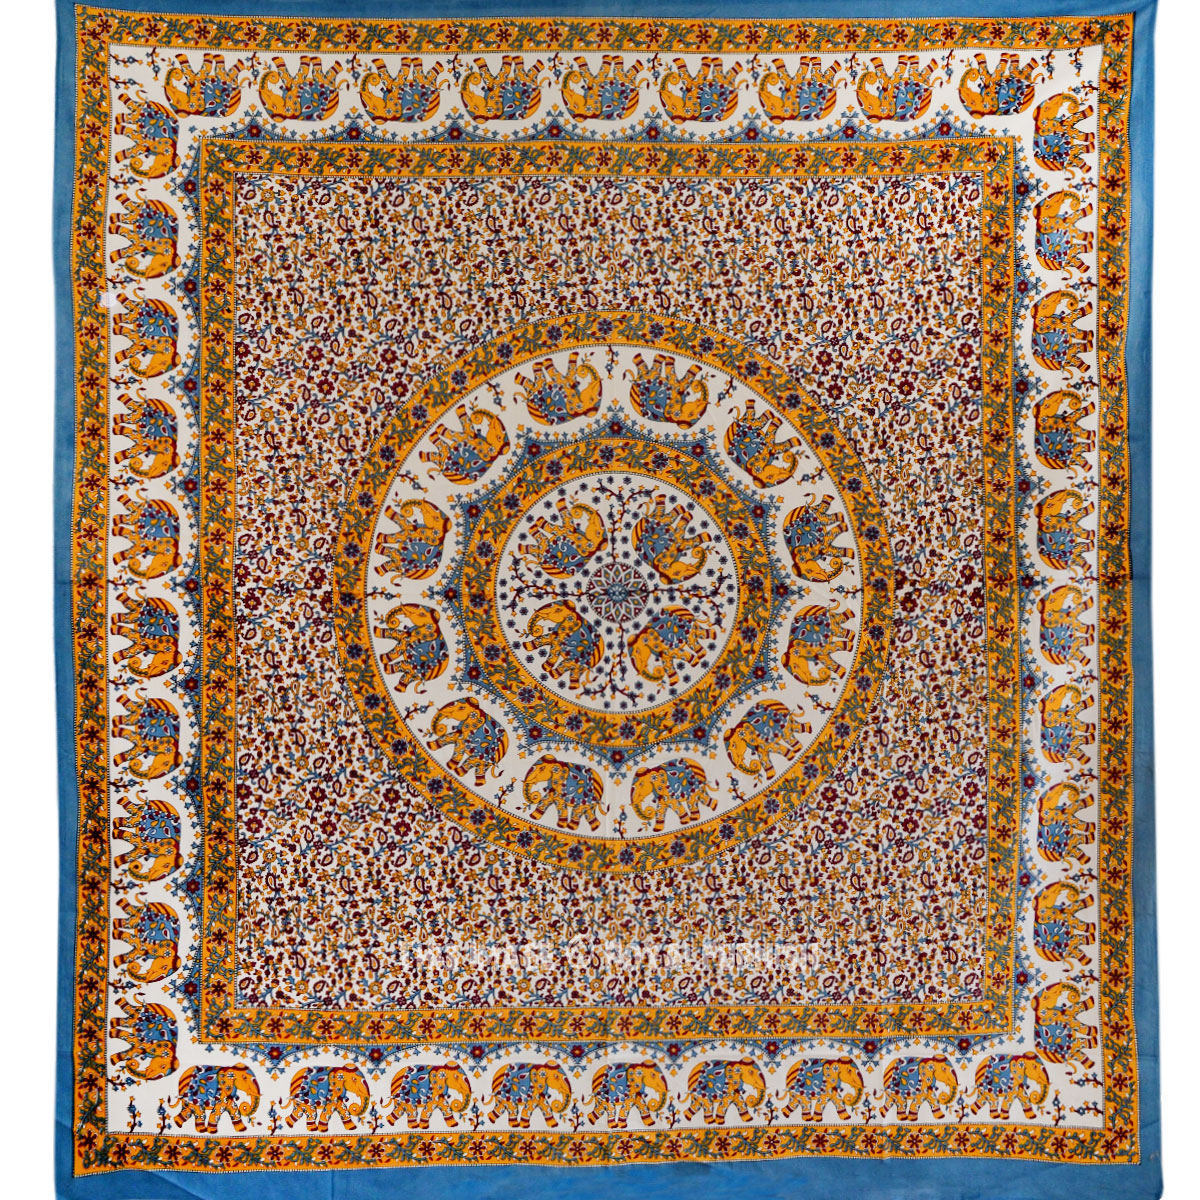 Furnish Your Home Multicolor Indian Elephant Mandala Hippie Tapestry Wall